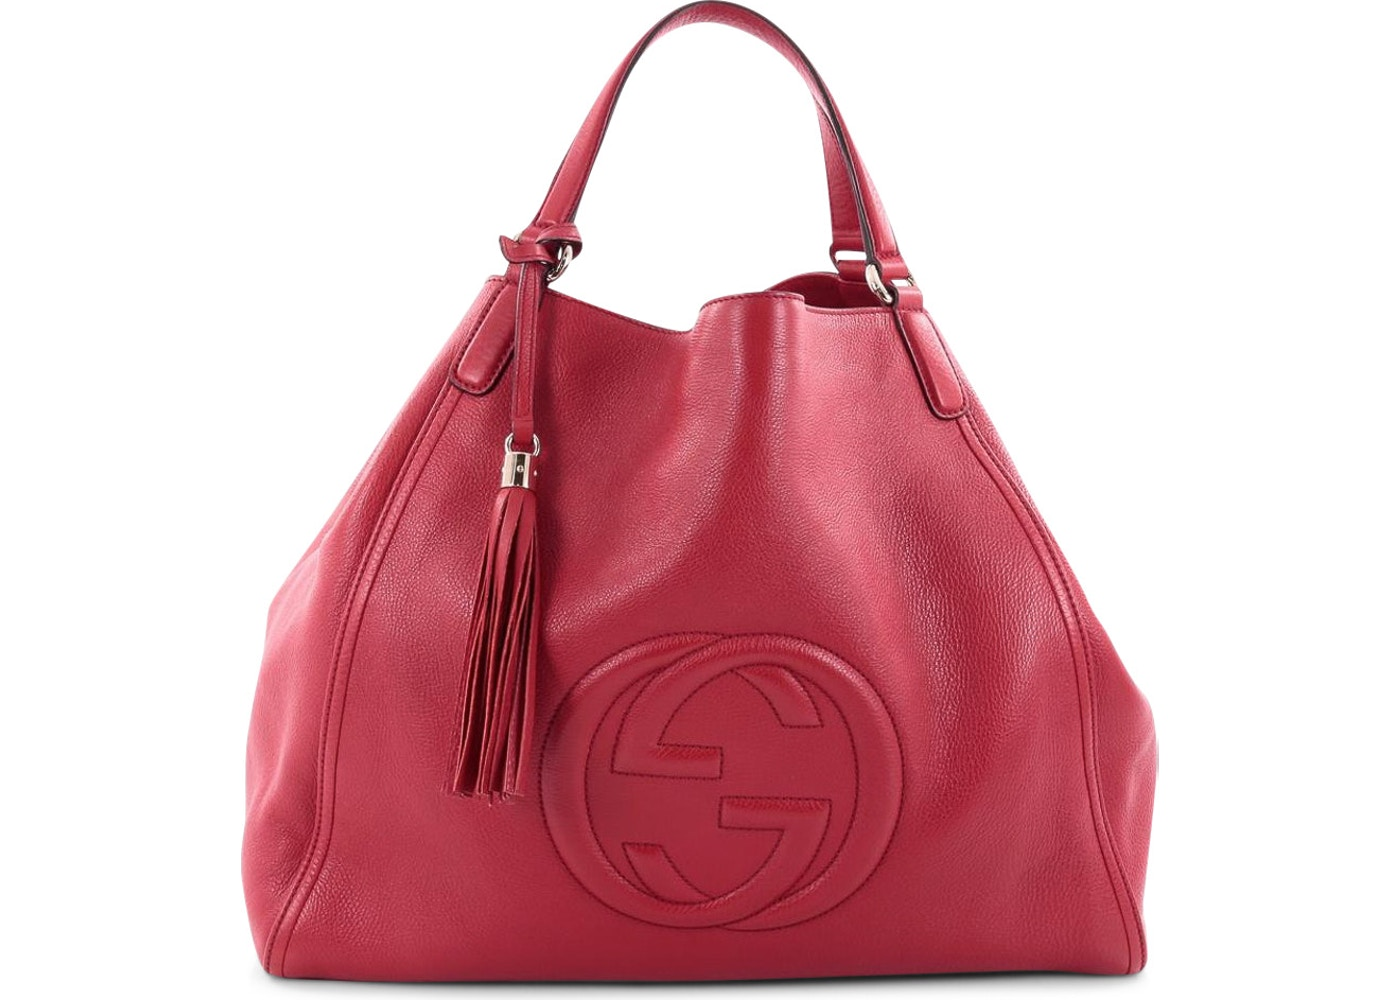 d211cac2e2a Gucci Soho Shoulder Bag GG Interlocking GG Logo Stitched Large Red. GG  Interlocking GG Logo Stitched Large Red